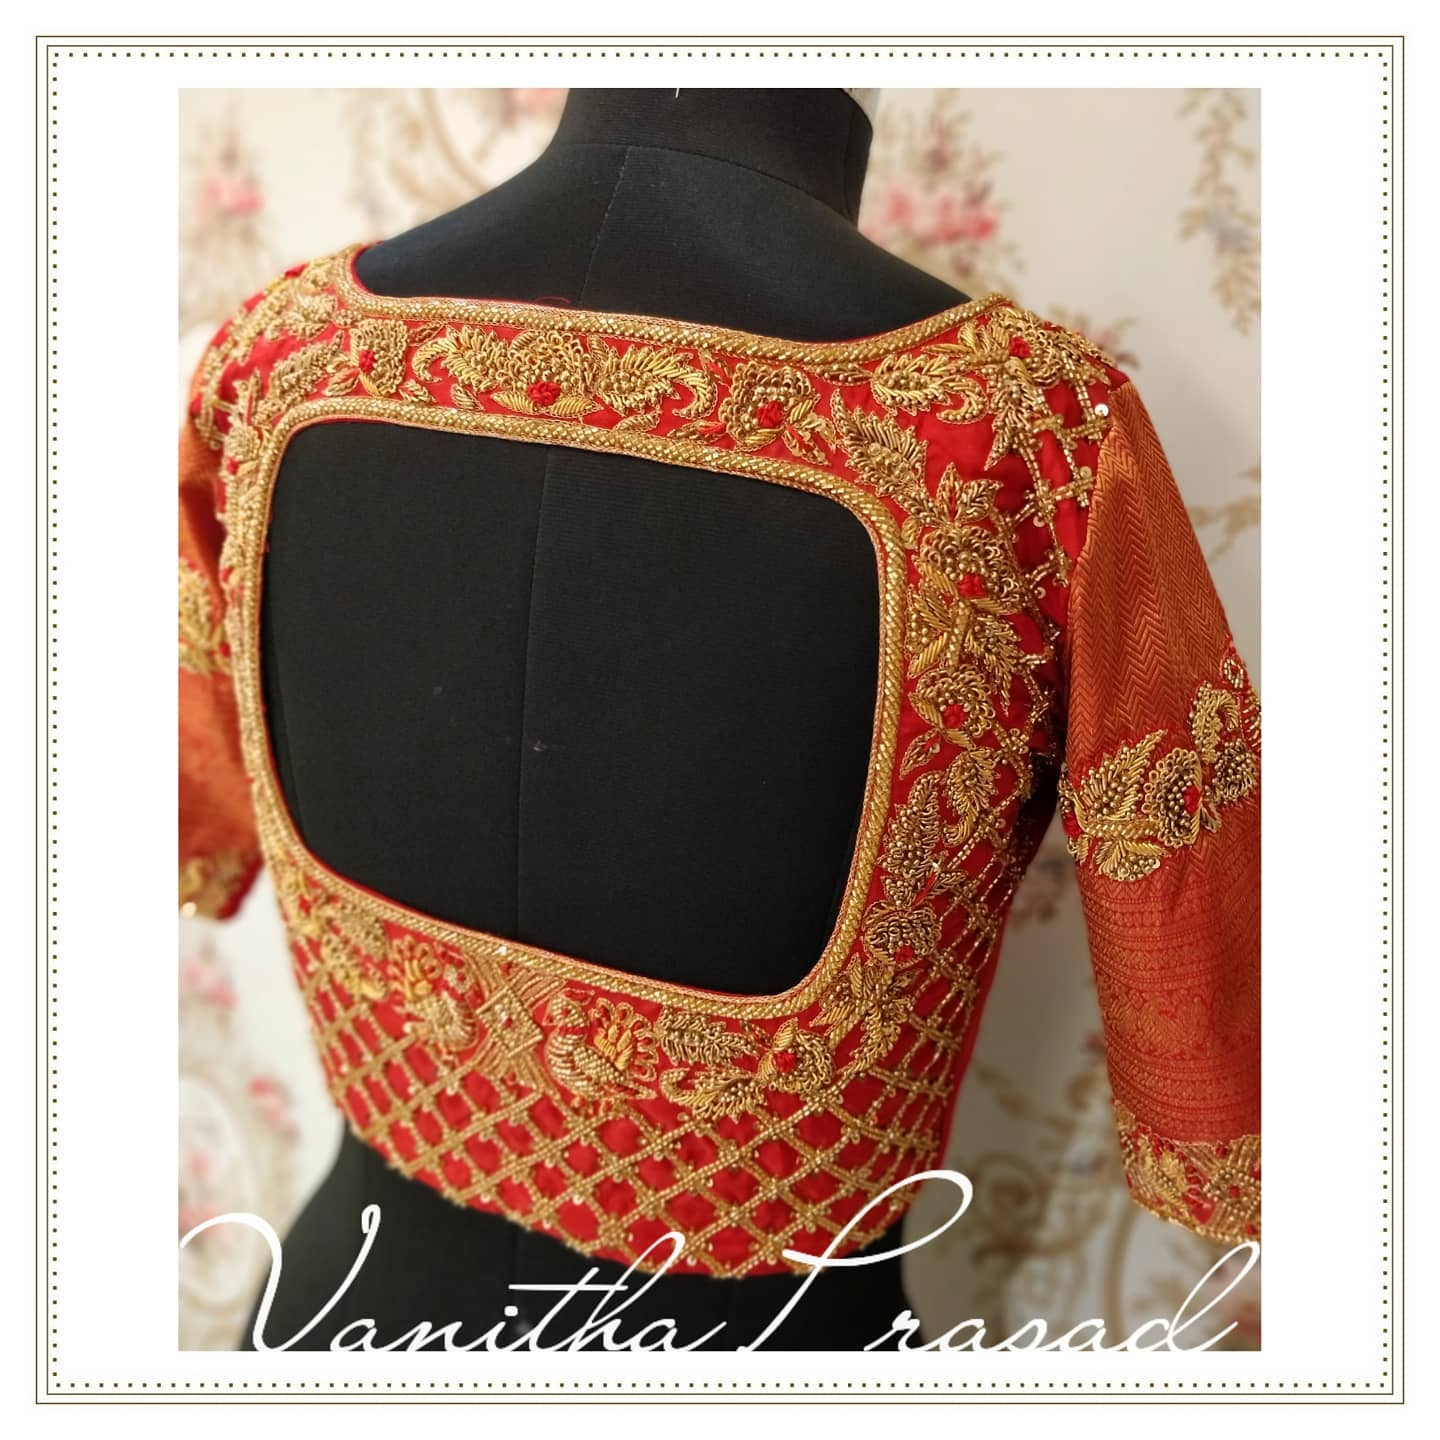 Stunning red color bridal blouse back with floral hand embroidery zardosi work on neckline and sleeves. Embracing elegance in every detail. Subtly glamorised for the initmate weddings. Super designs for the stunning brides. 2021-08-05